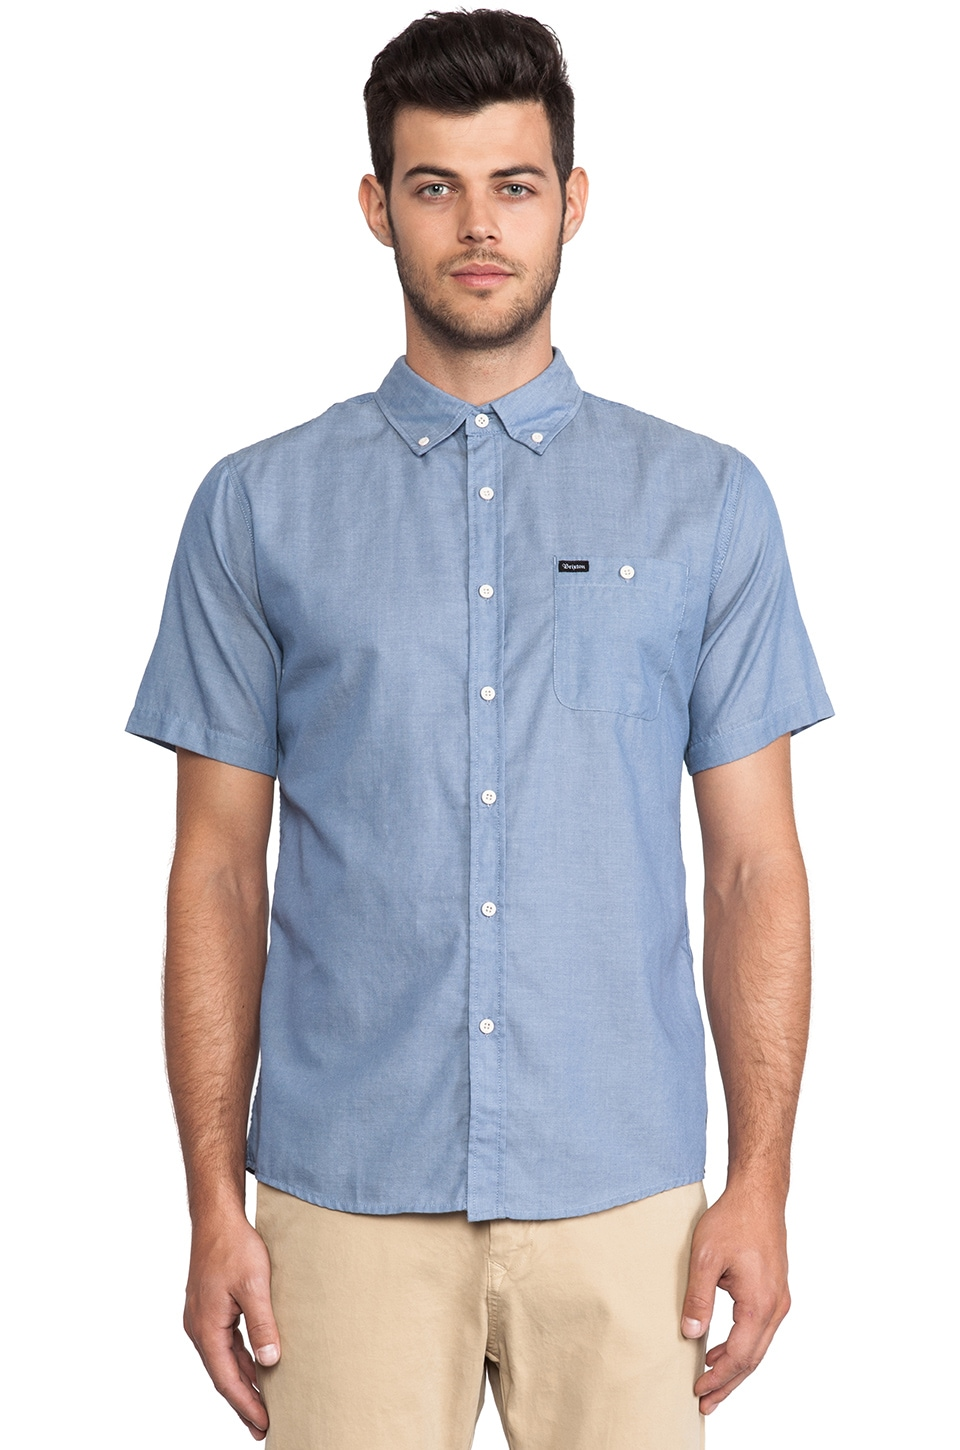 Brixton Central Shirt in Blue